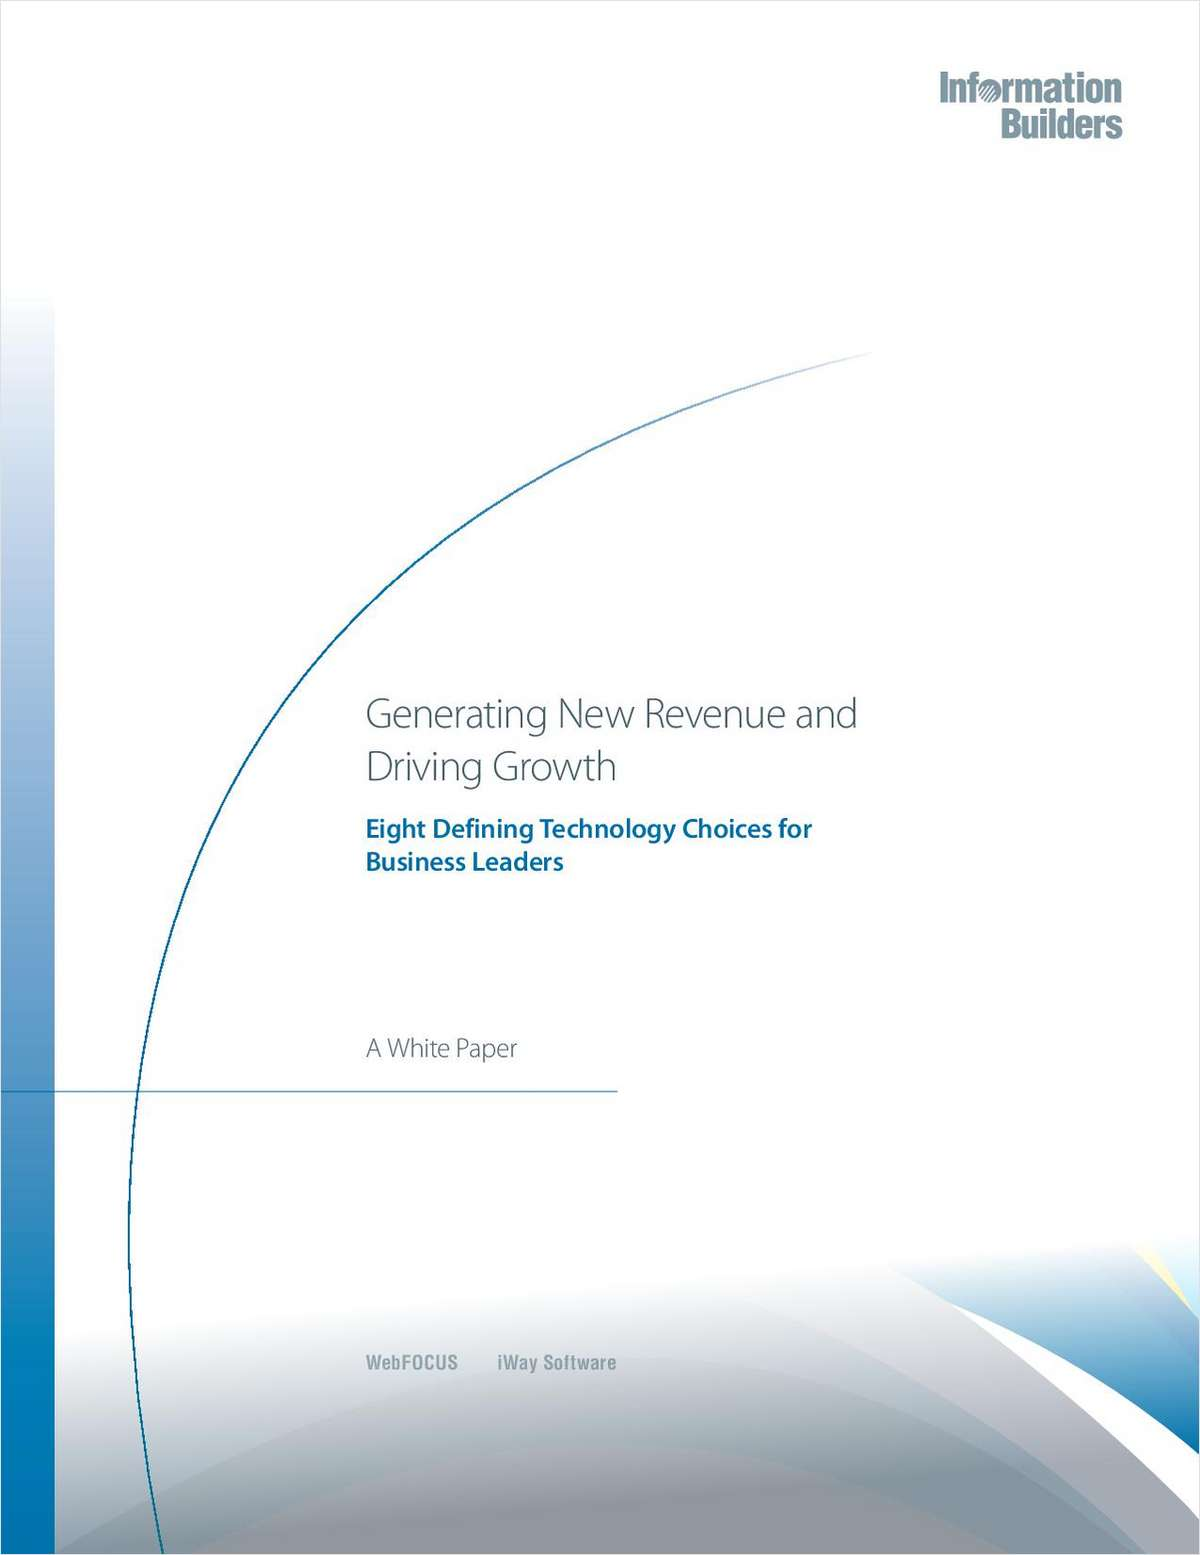 Generating New Revenue and Driving Growth: Eight Defining Technology Choices for Business Leaders